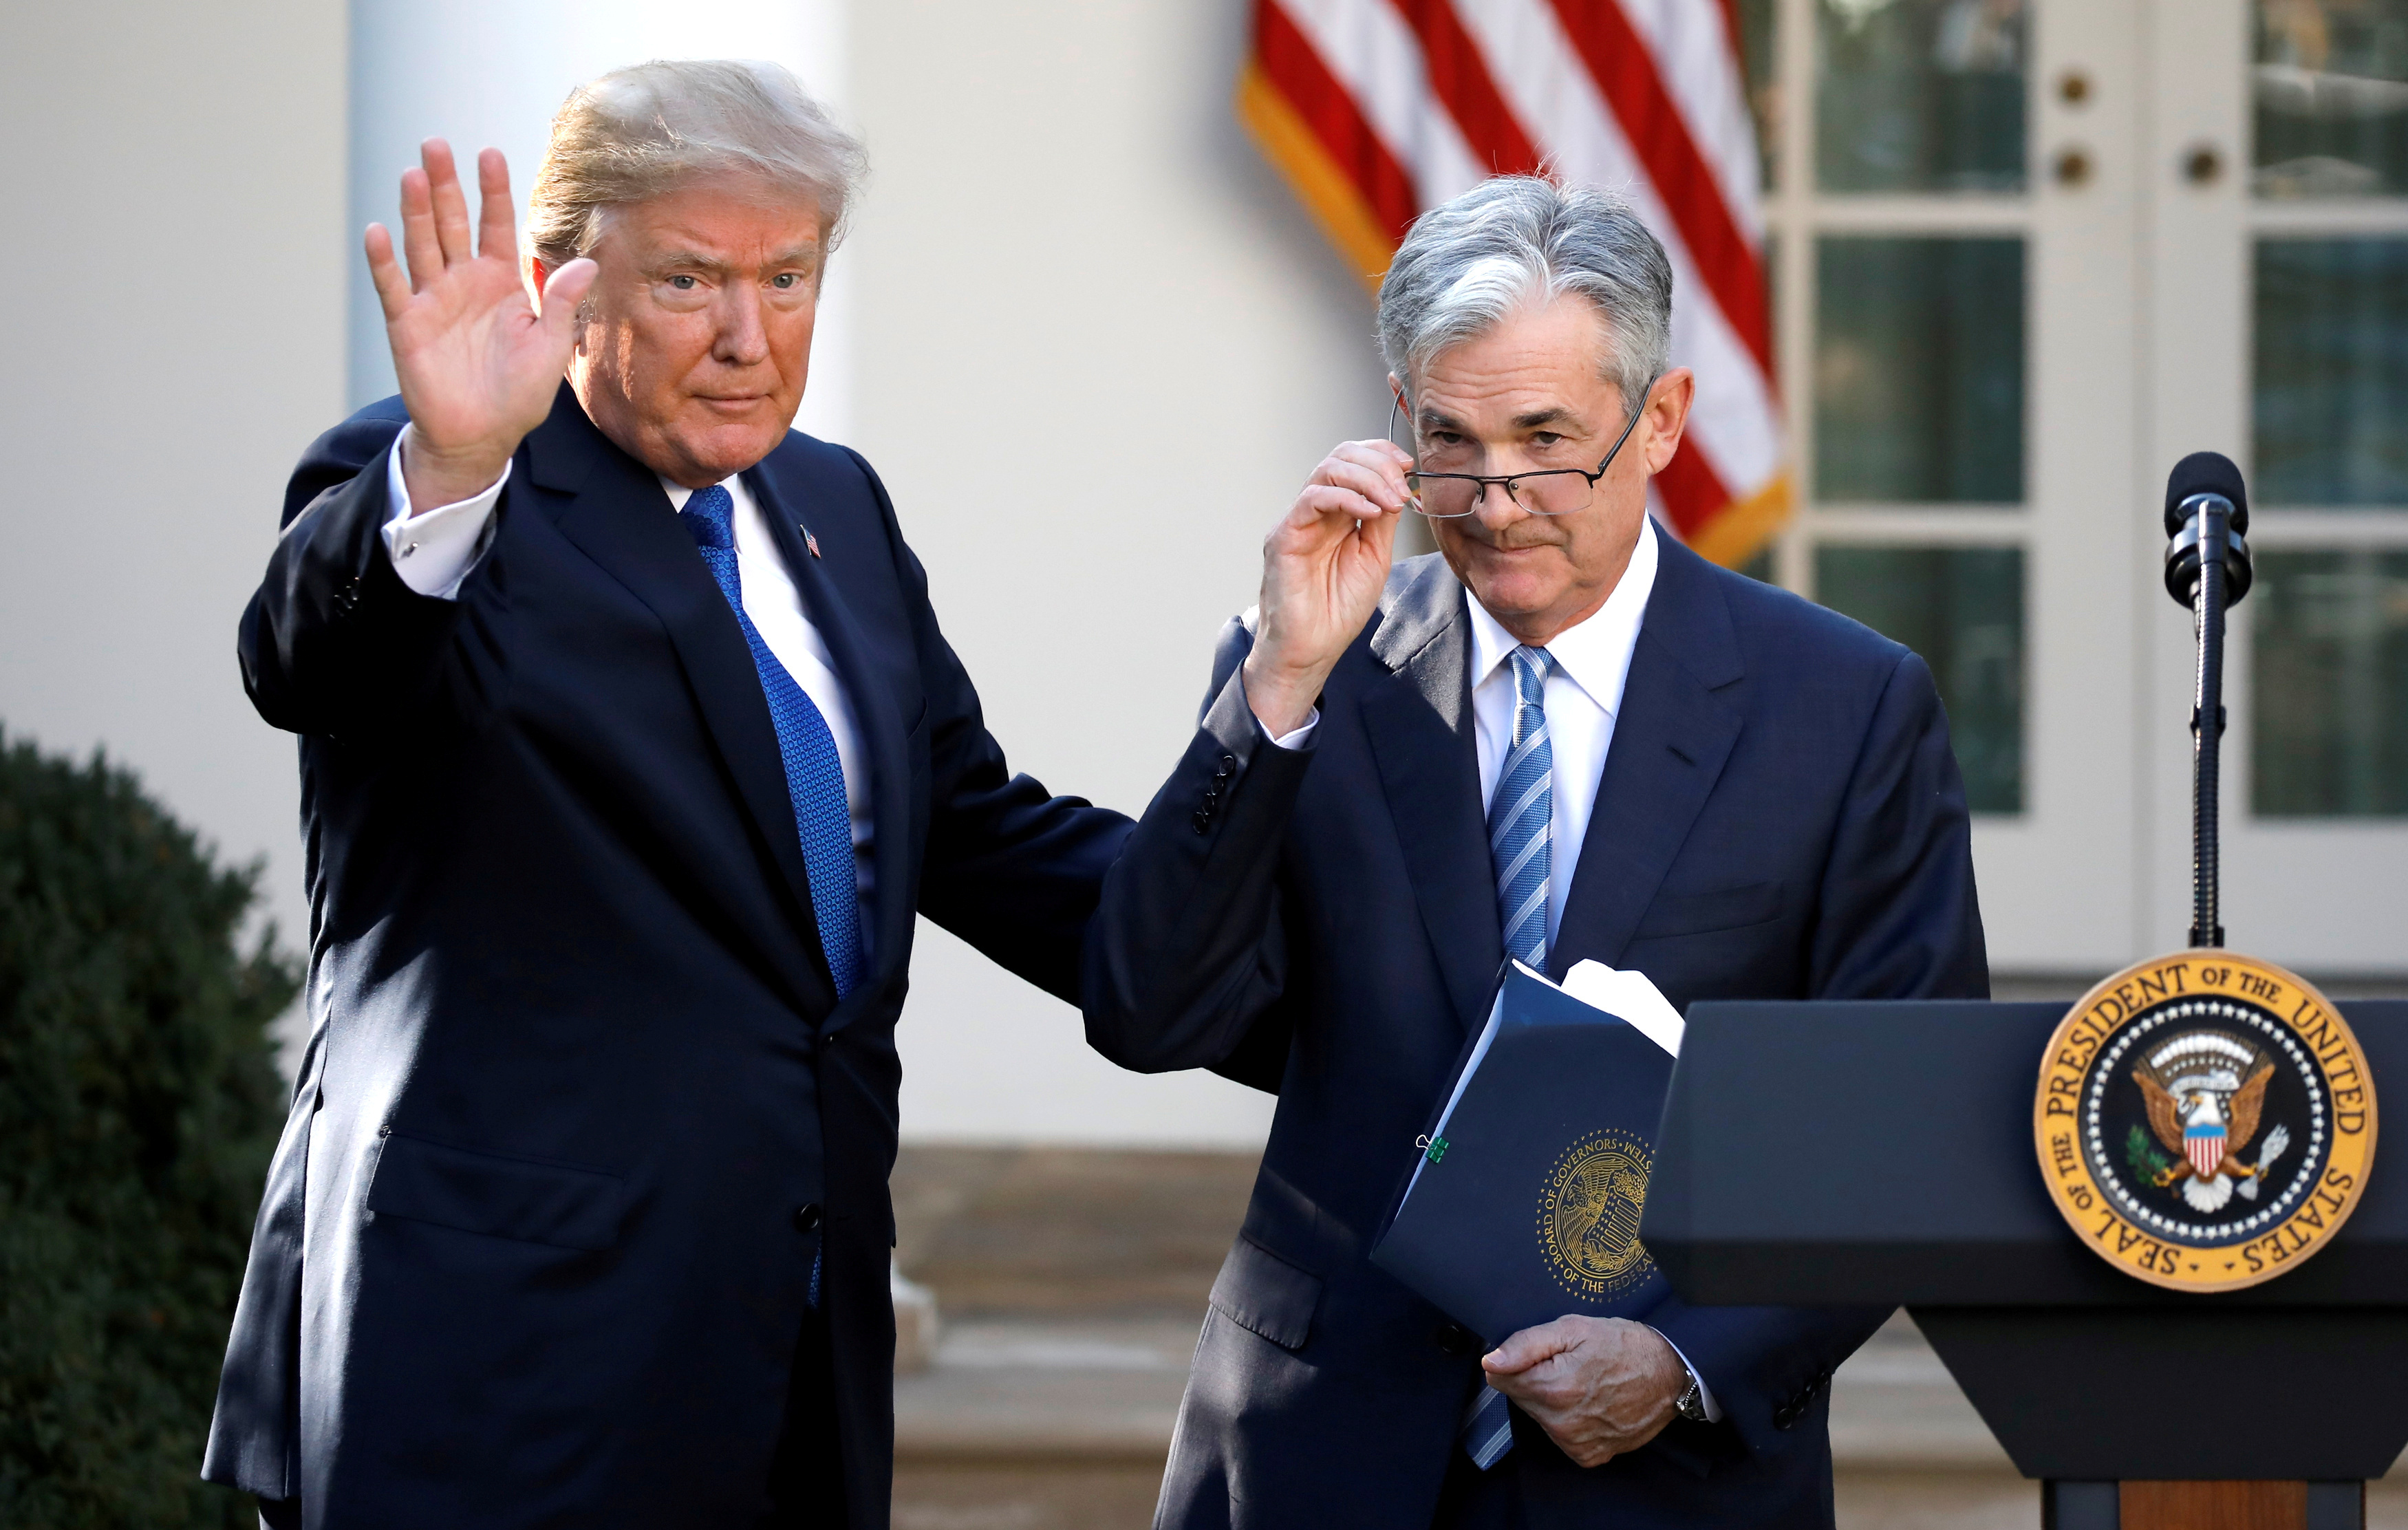 U.S. President Donald Trump gestures with Jerome Powell, his nominee to become chairman of the U.S. Federal Reserve at the White House in Washington, U.S., November 2, 2017. REUTERS/Carlos Barria/File Photo